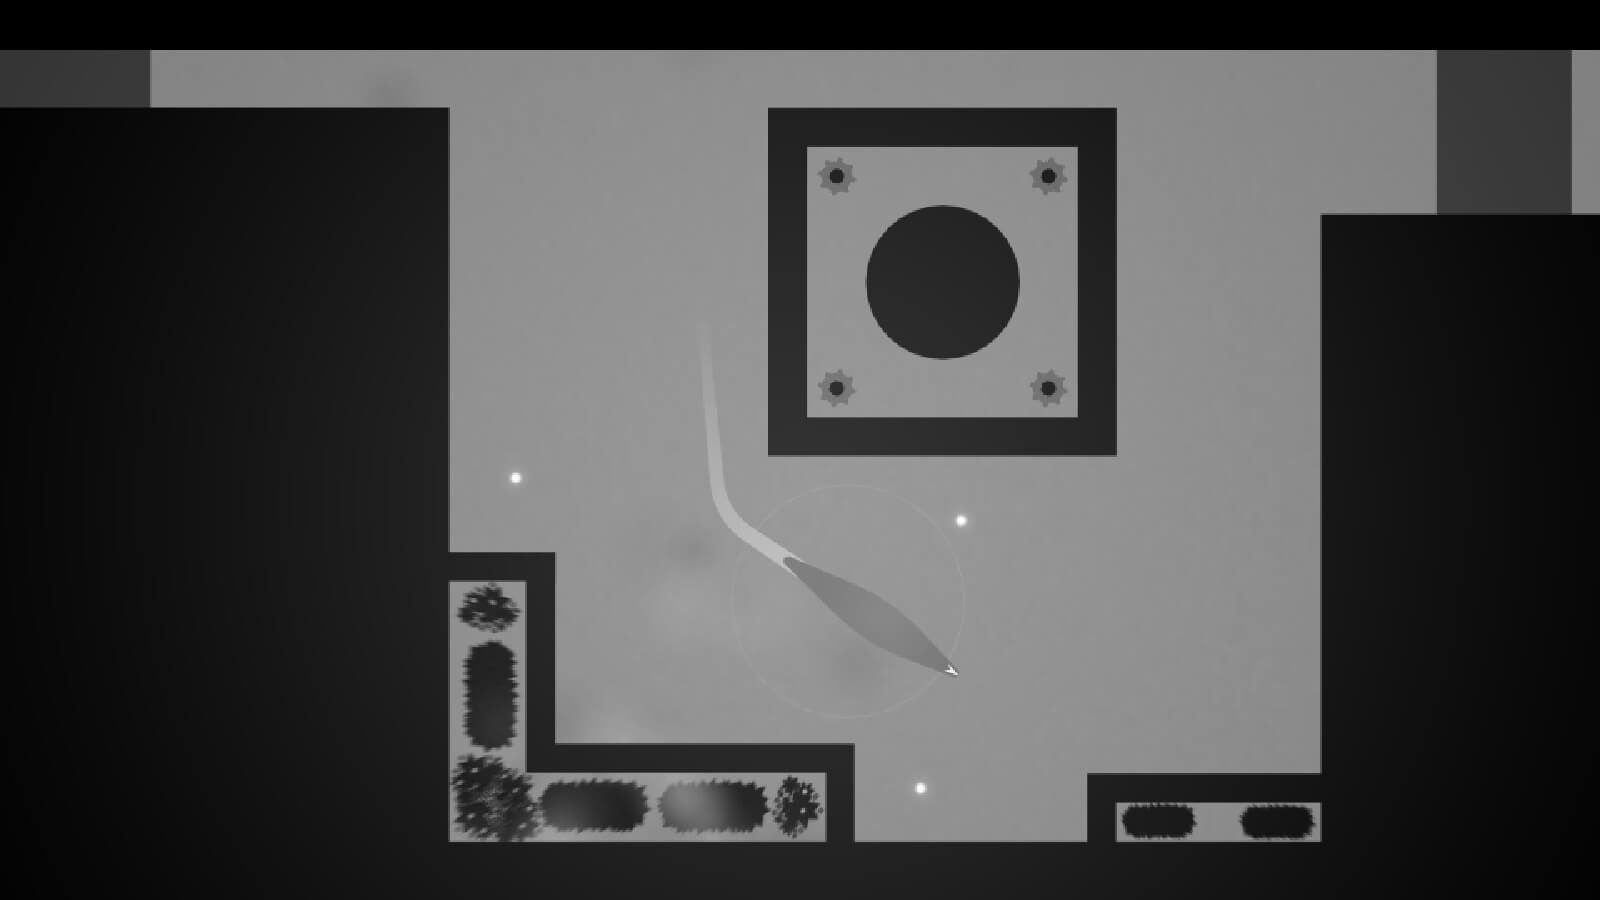 Seen from top down, a slug-like creature moves in an angular enclosed space all rendered in grayscale.